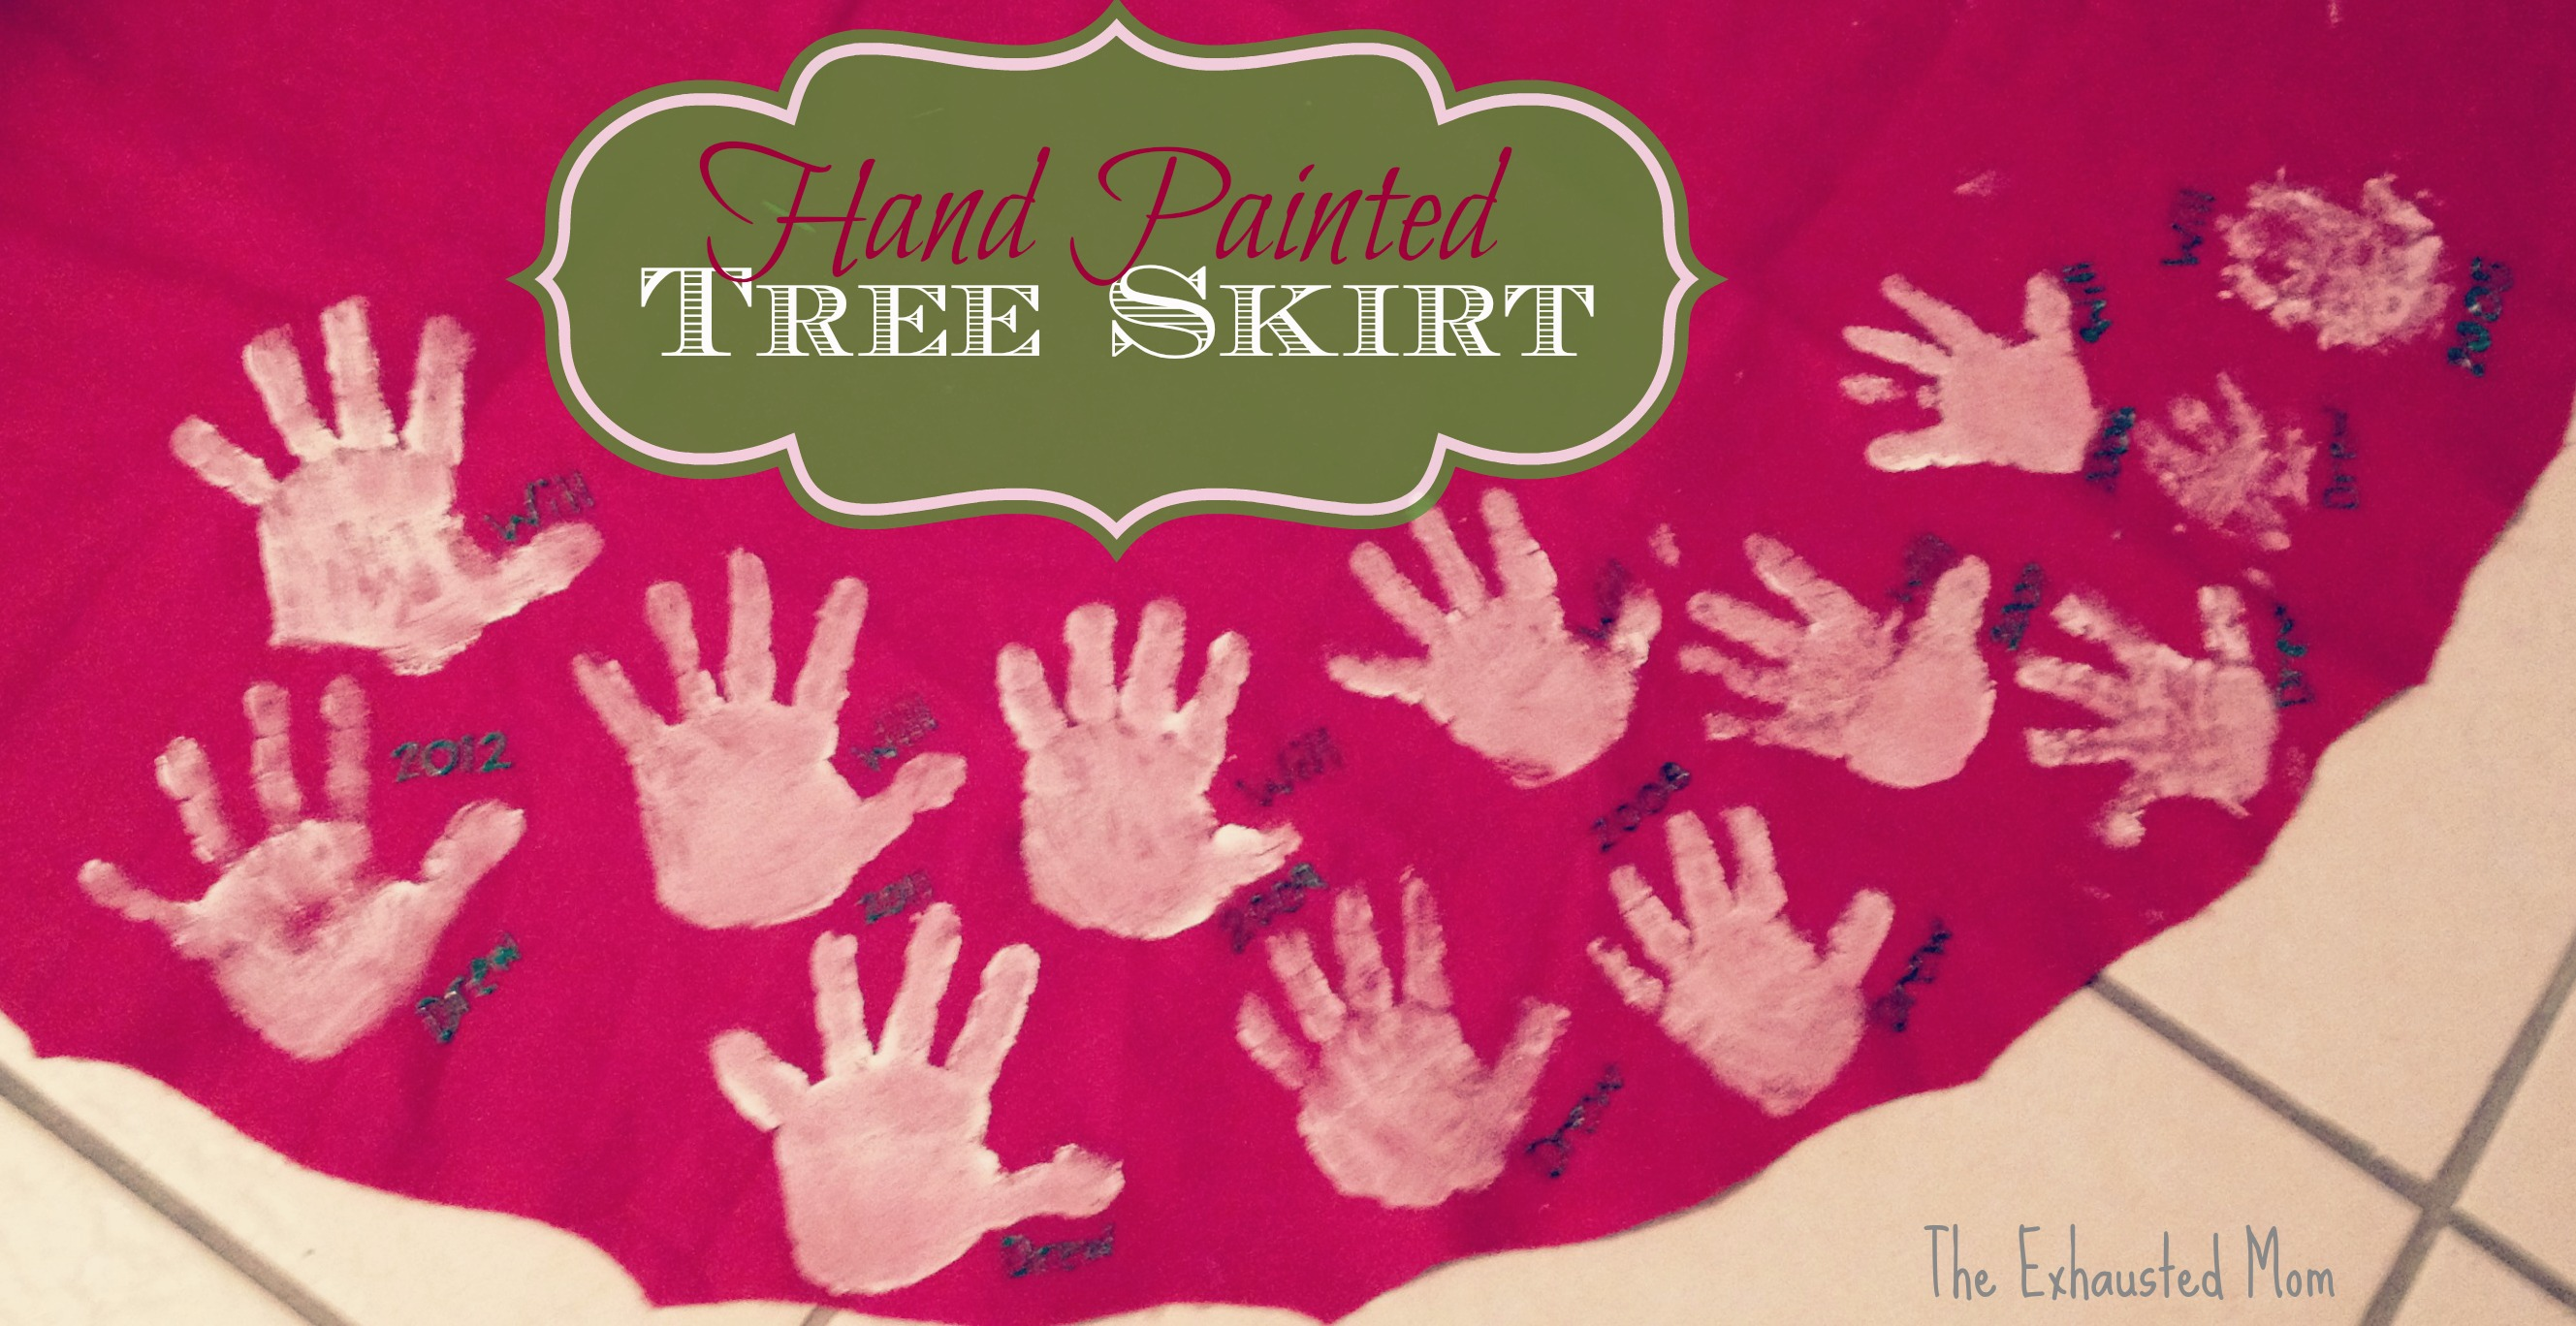 Holiday Traditions ~ A Hand Painted Tree Skirt - The Exhausted Mom